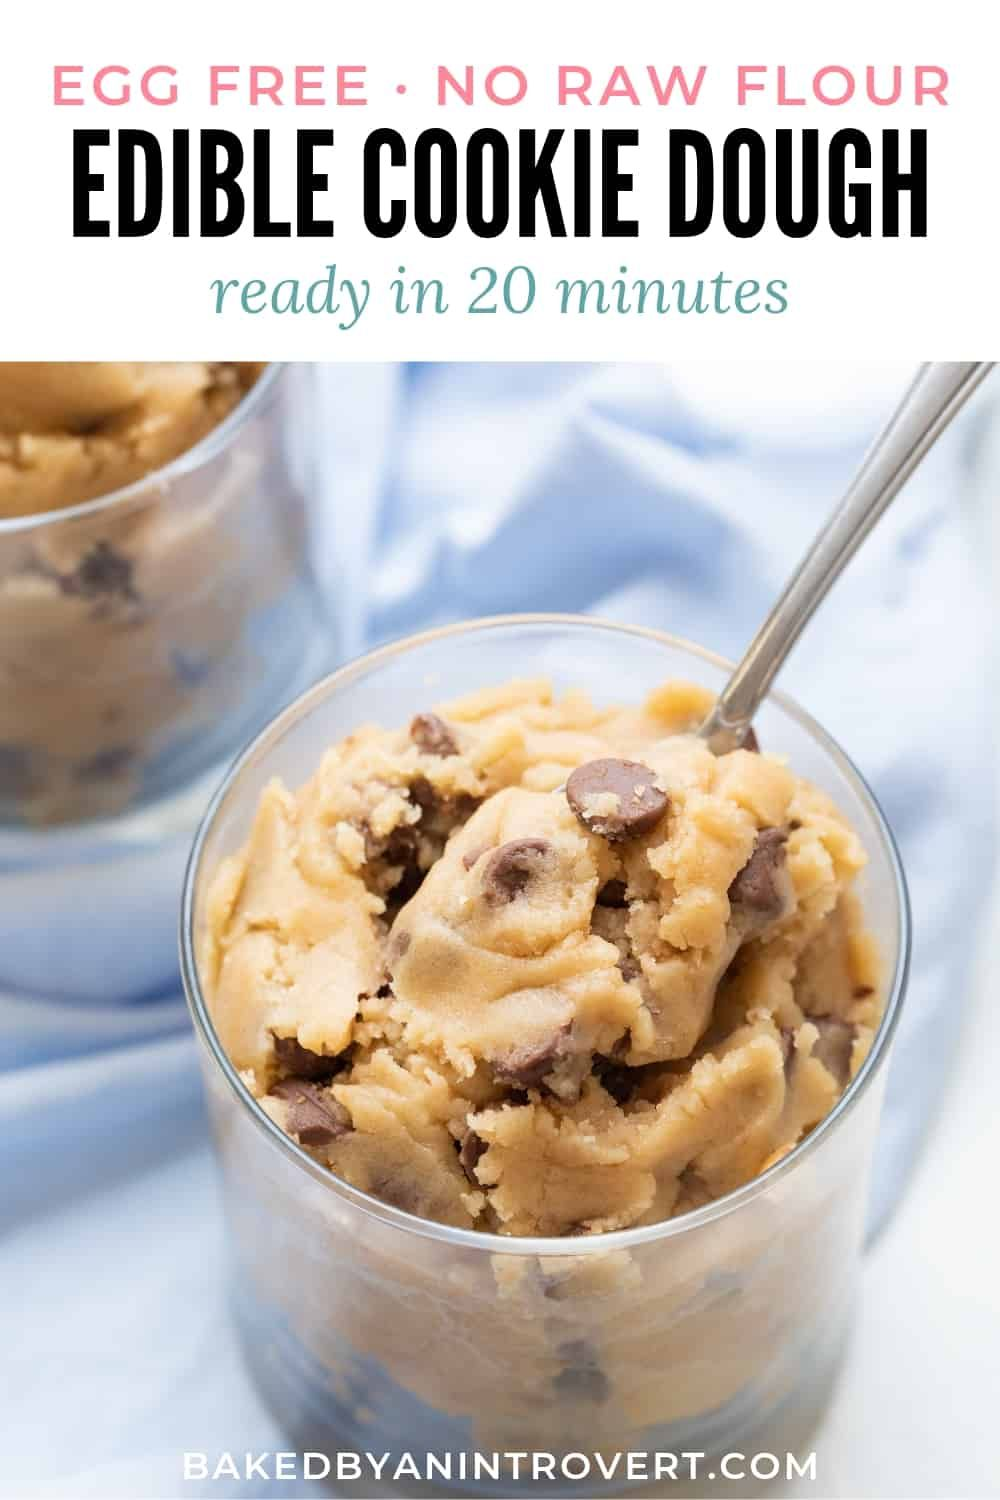 Edible Cookie Dough | Baked by an Introvert®